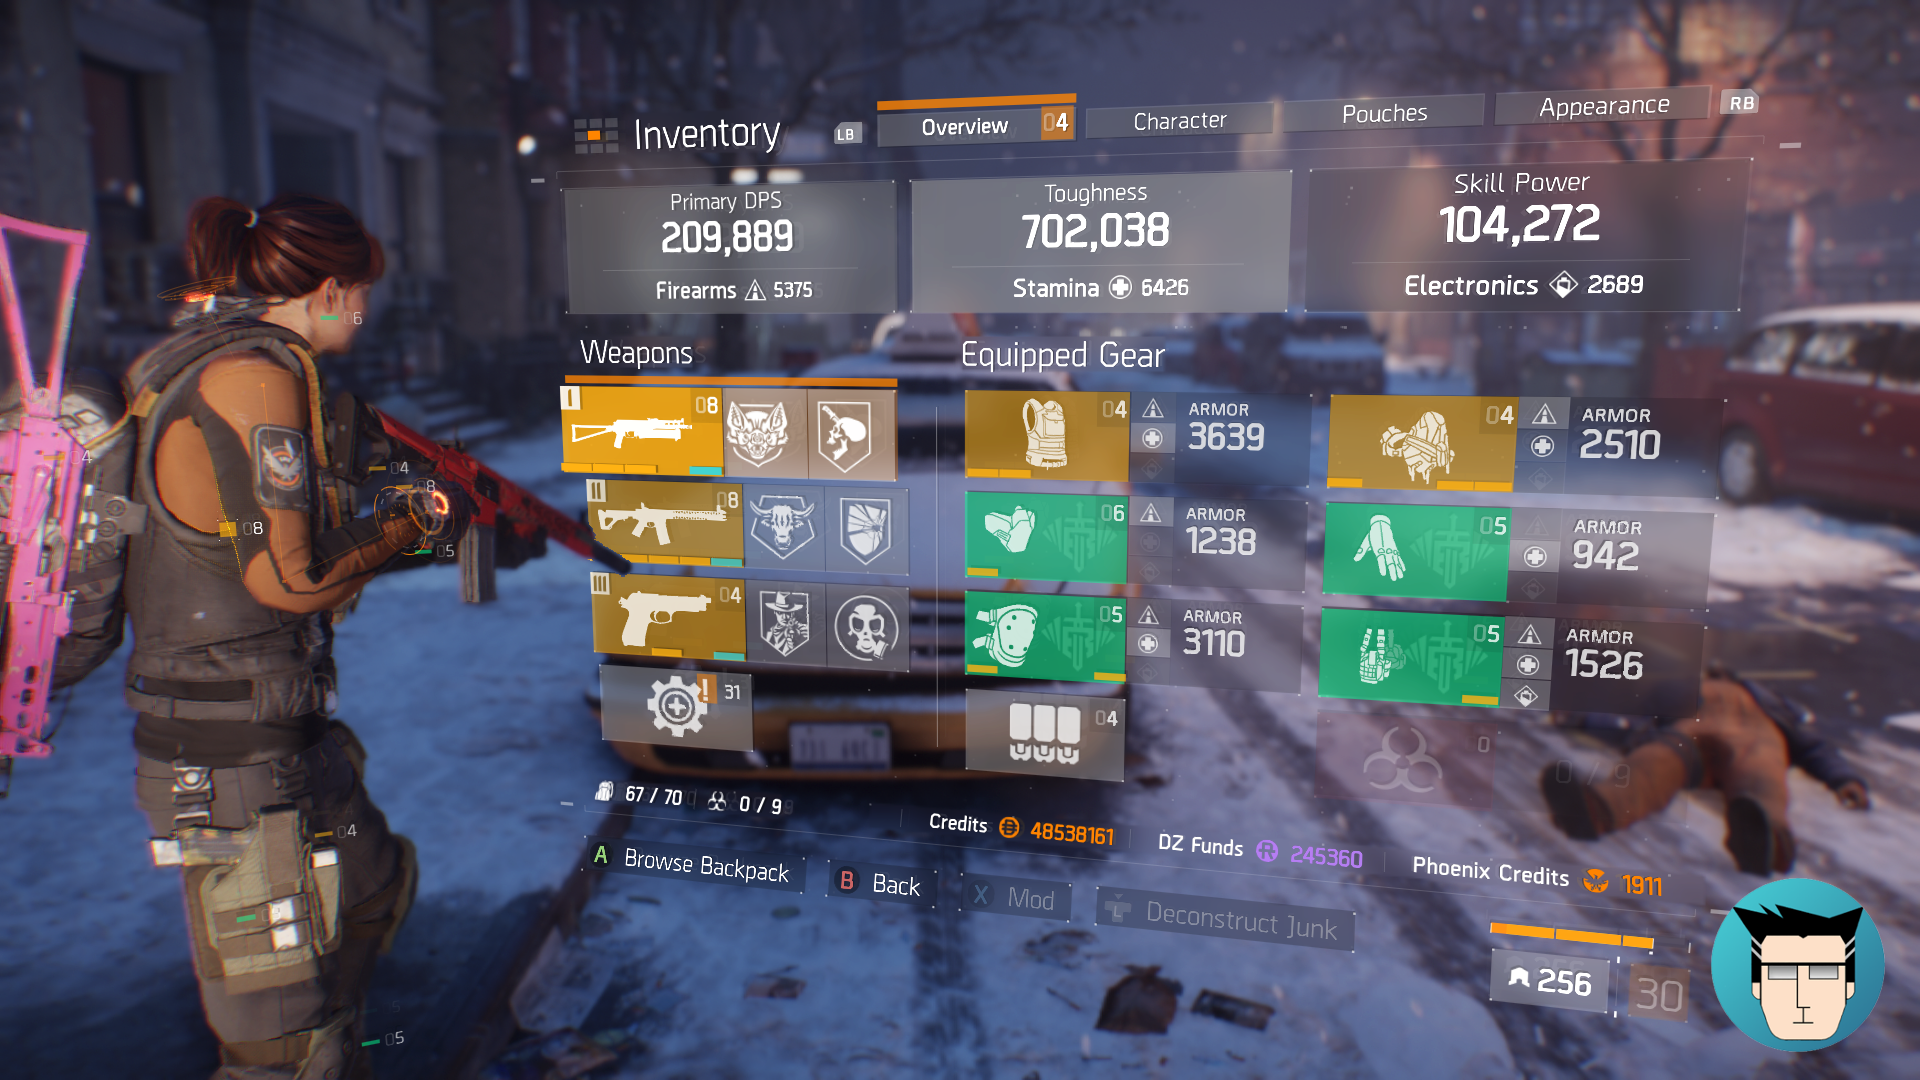 Overview | 700k Toughness, 2 skills on cooldown